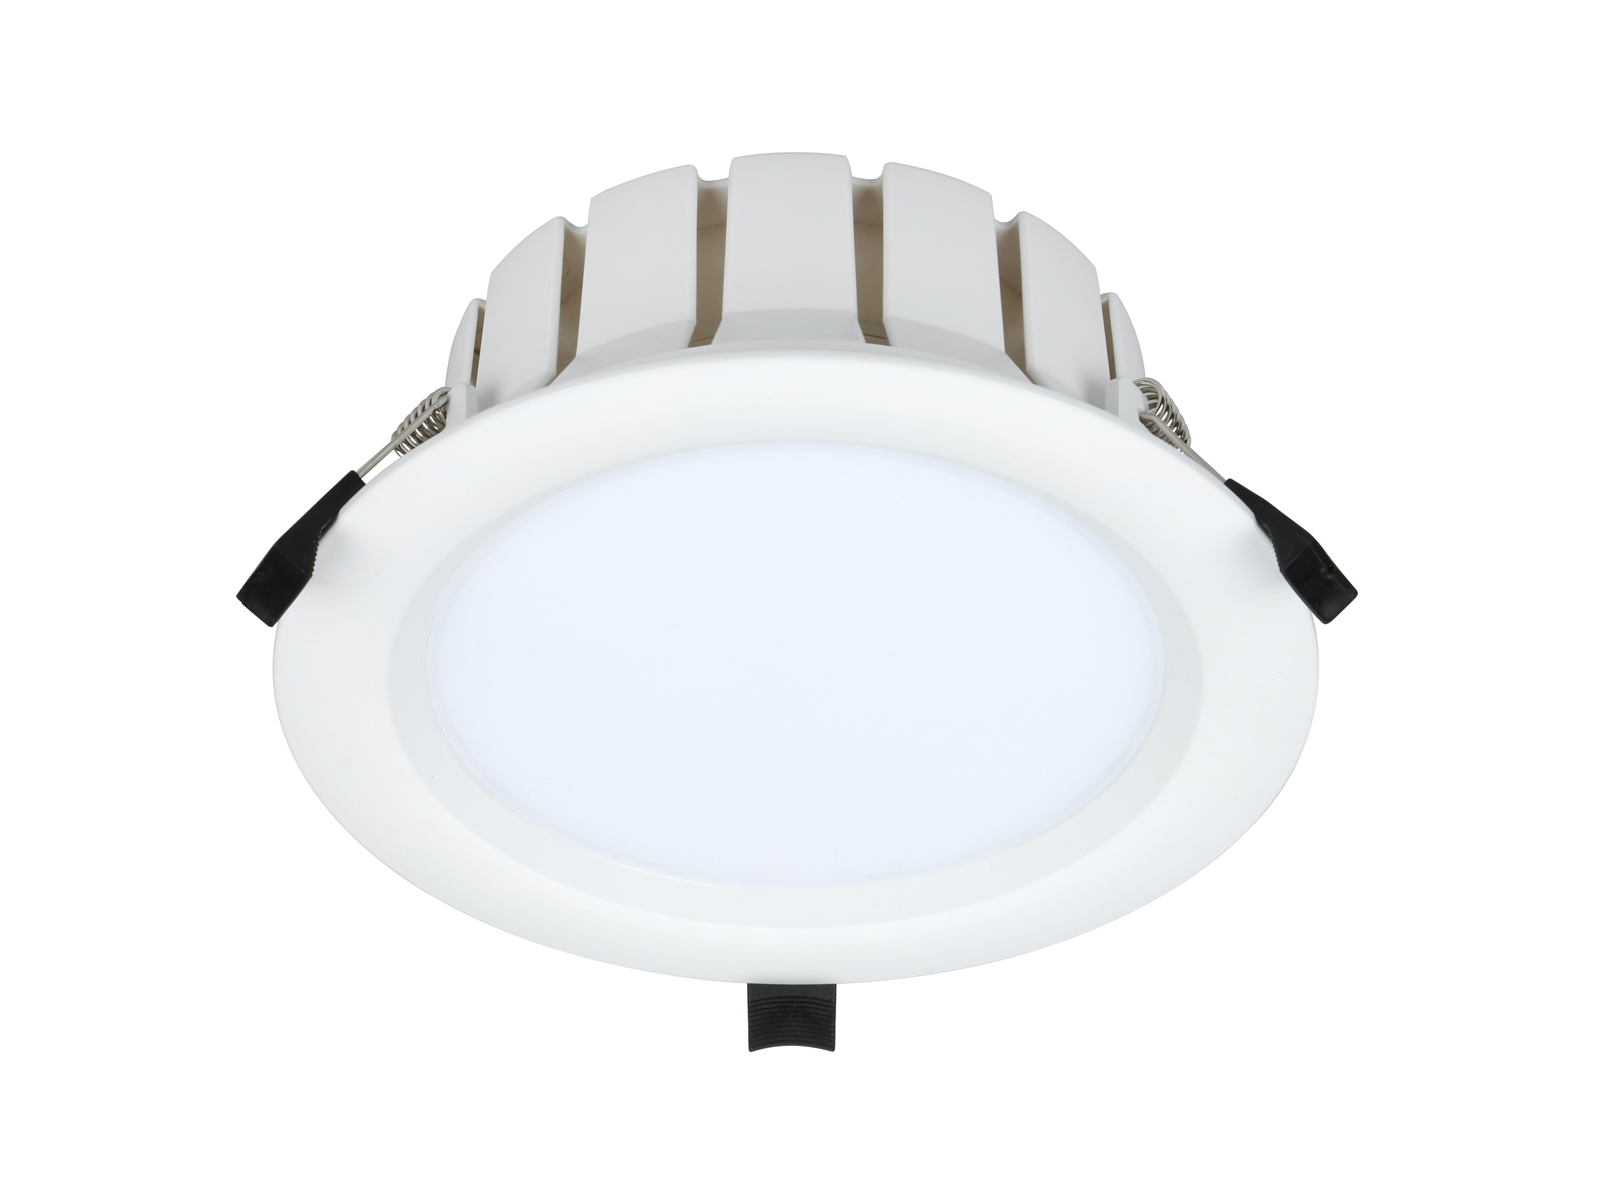 DL86 LED Downlight